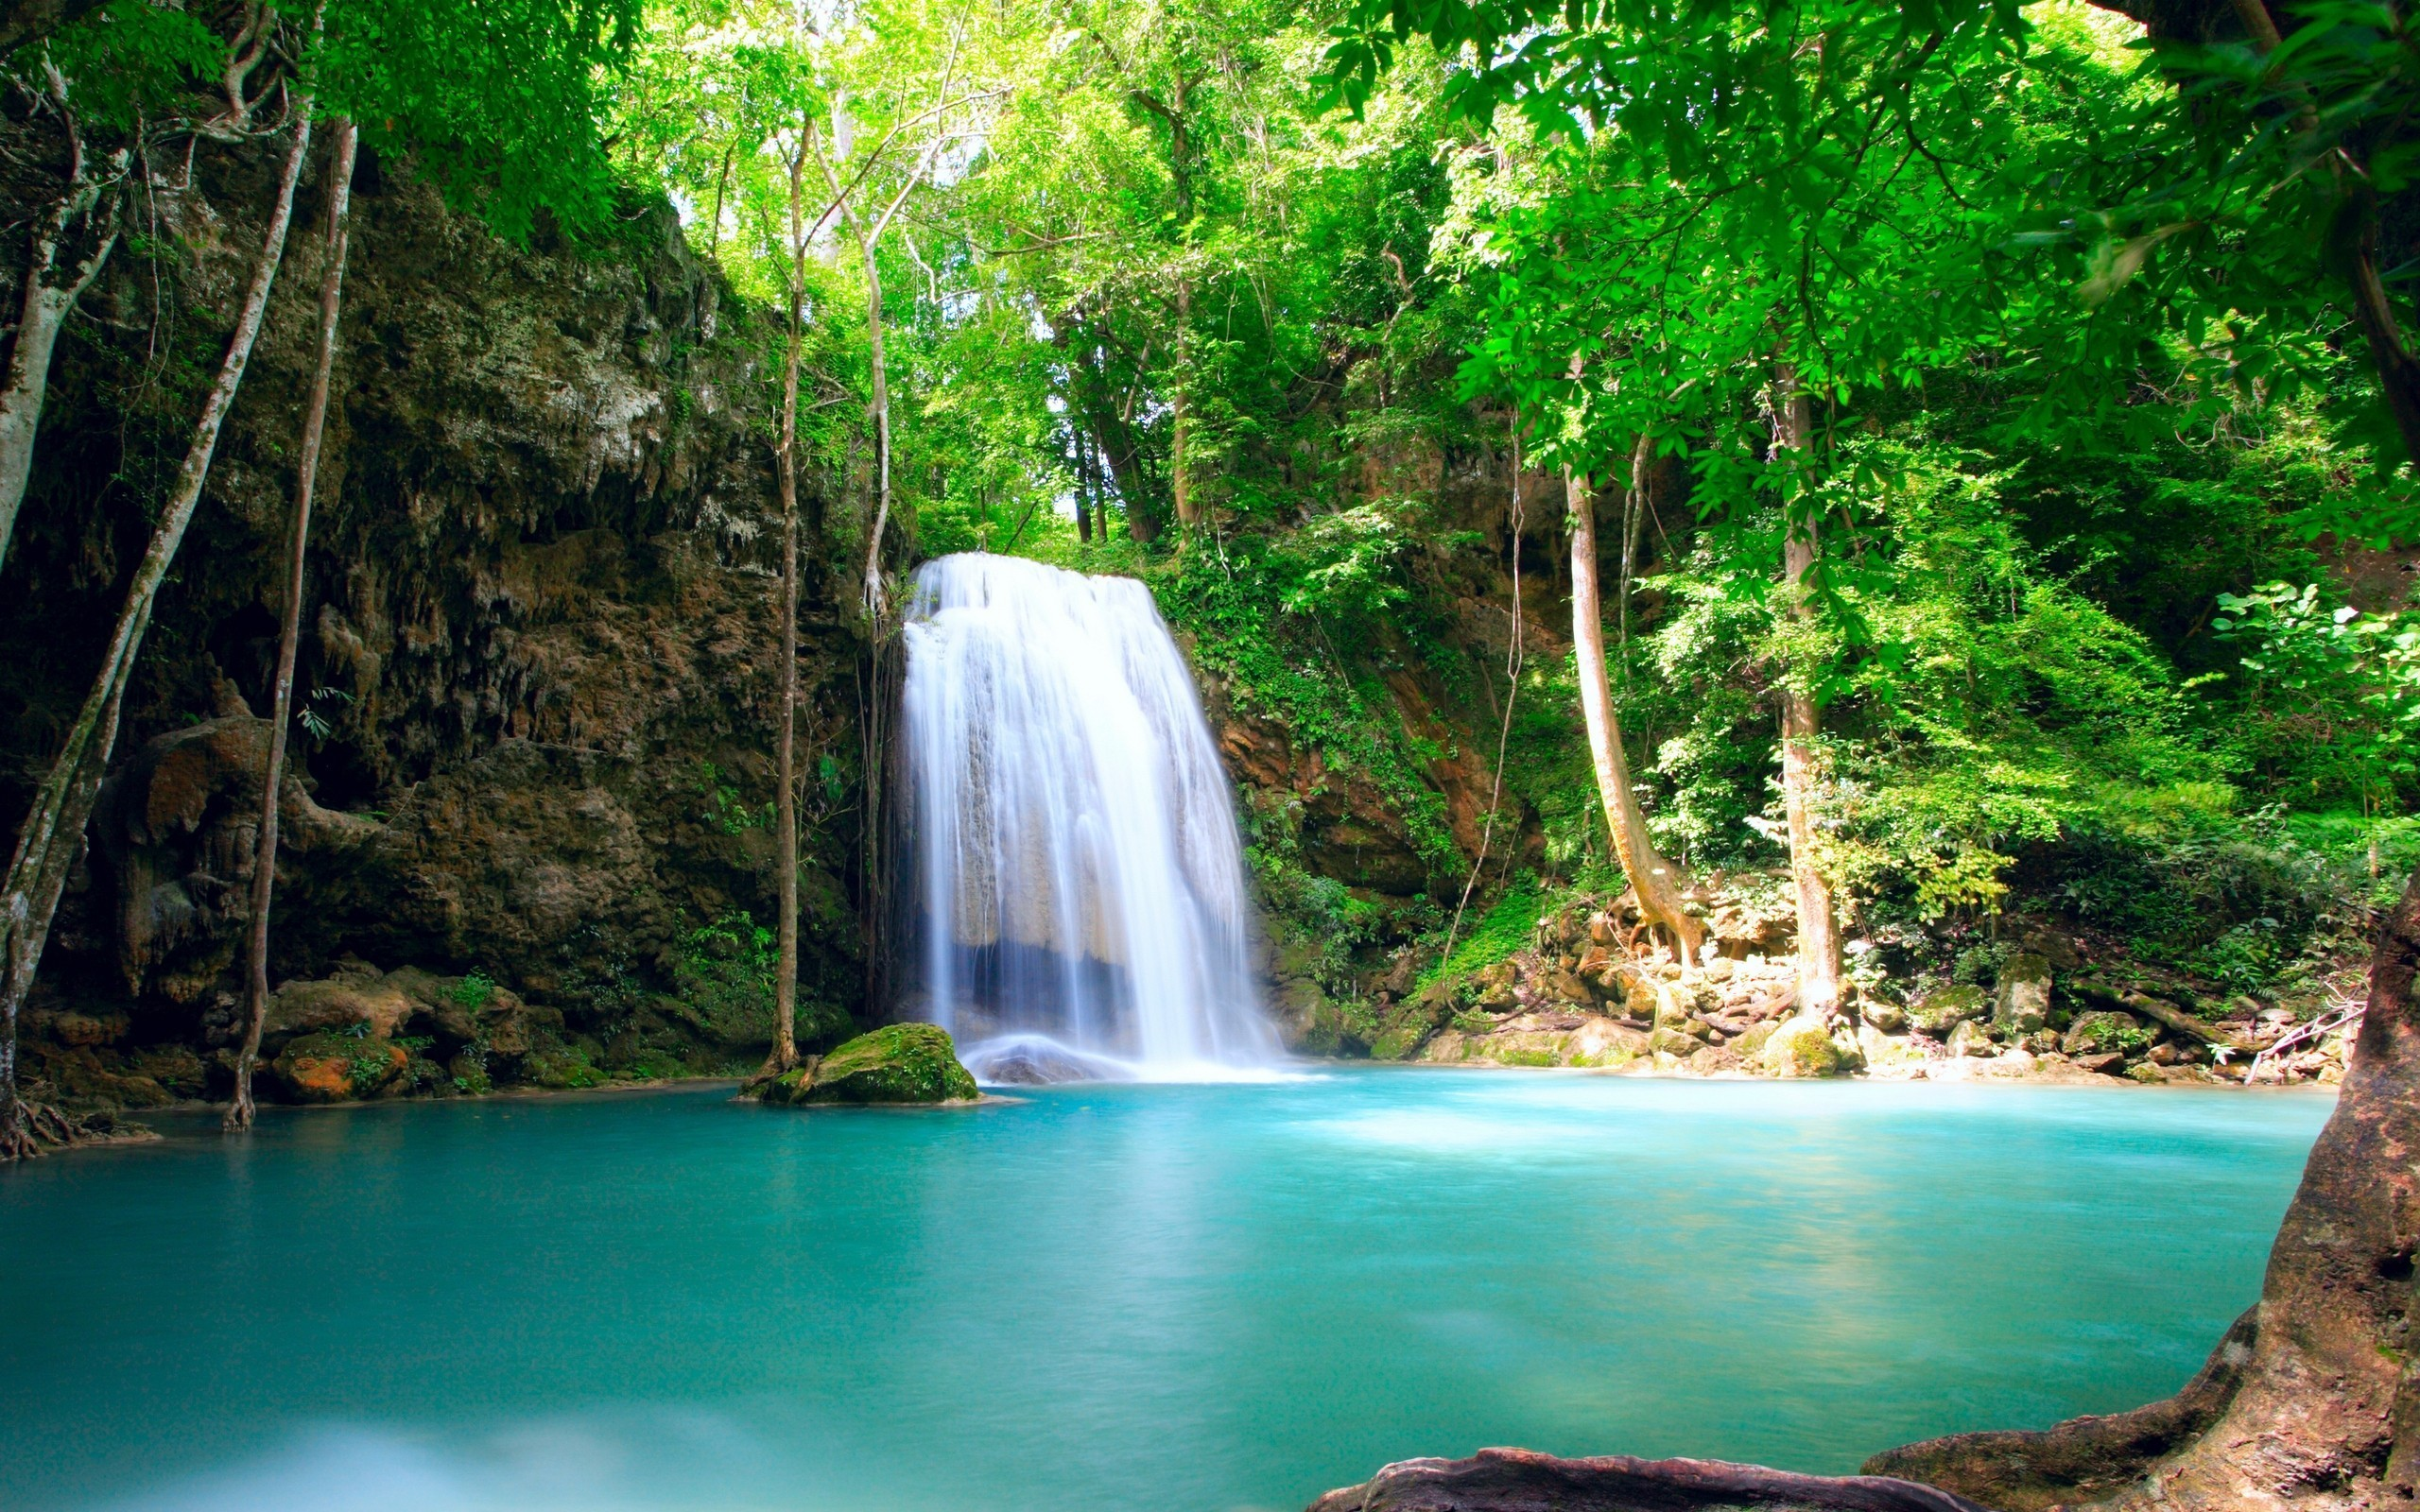 Find out: Beautiful Waterfall HD Background wallpaper on  https://hdpicorner.com